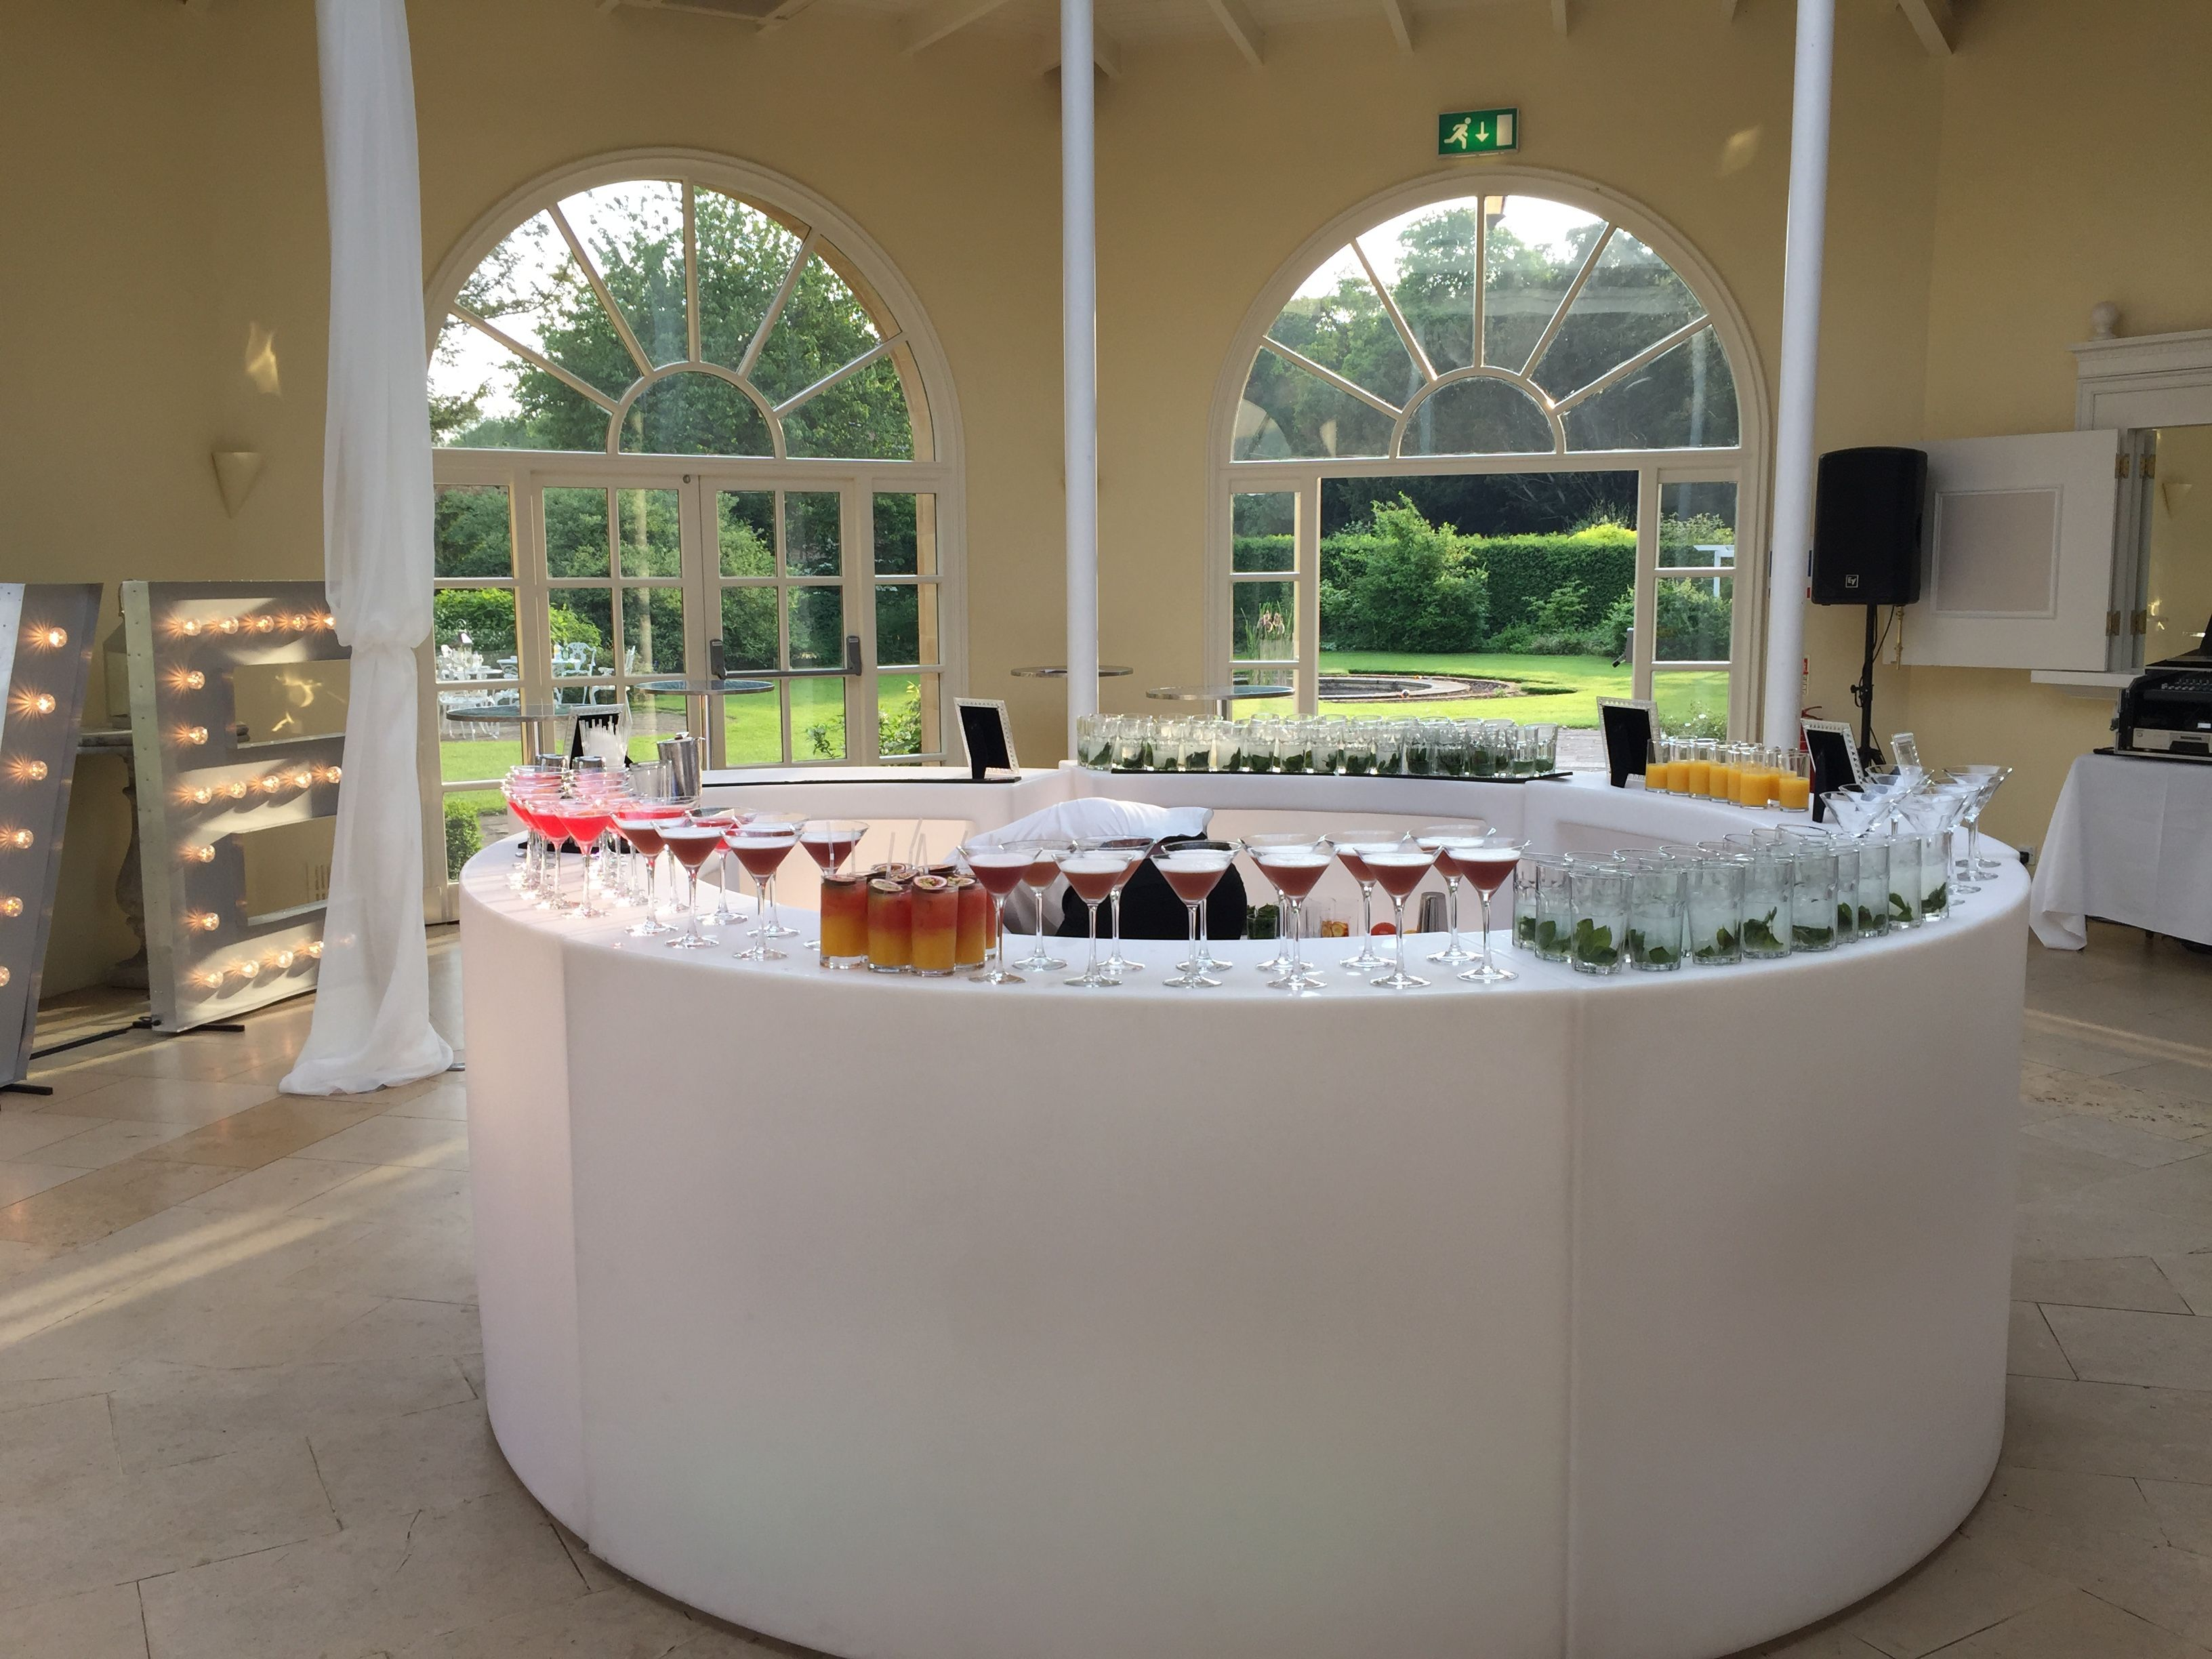 Flair Tail Bartender Hire And Mobile Bars For Weddings Give Your Guest The Best